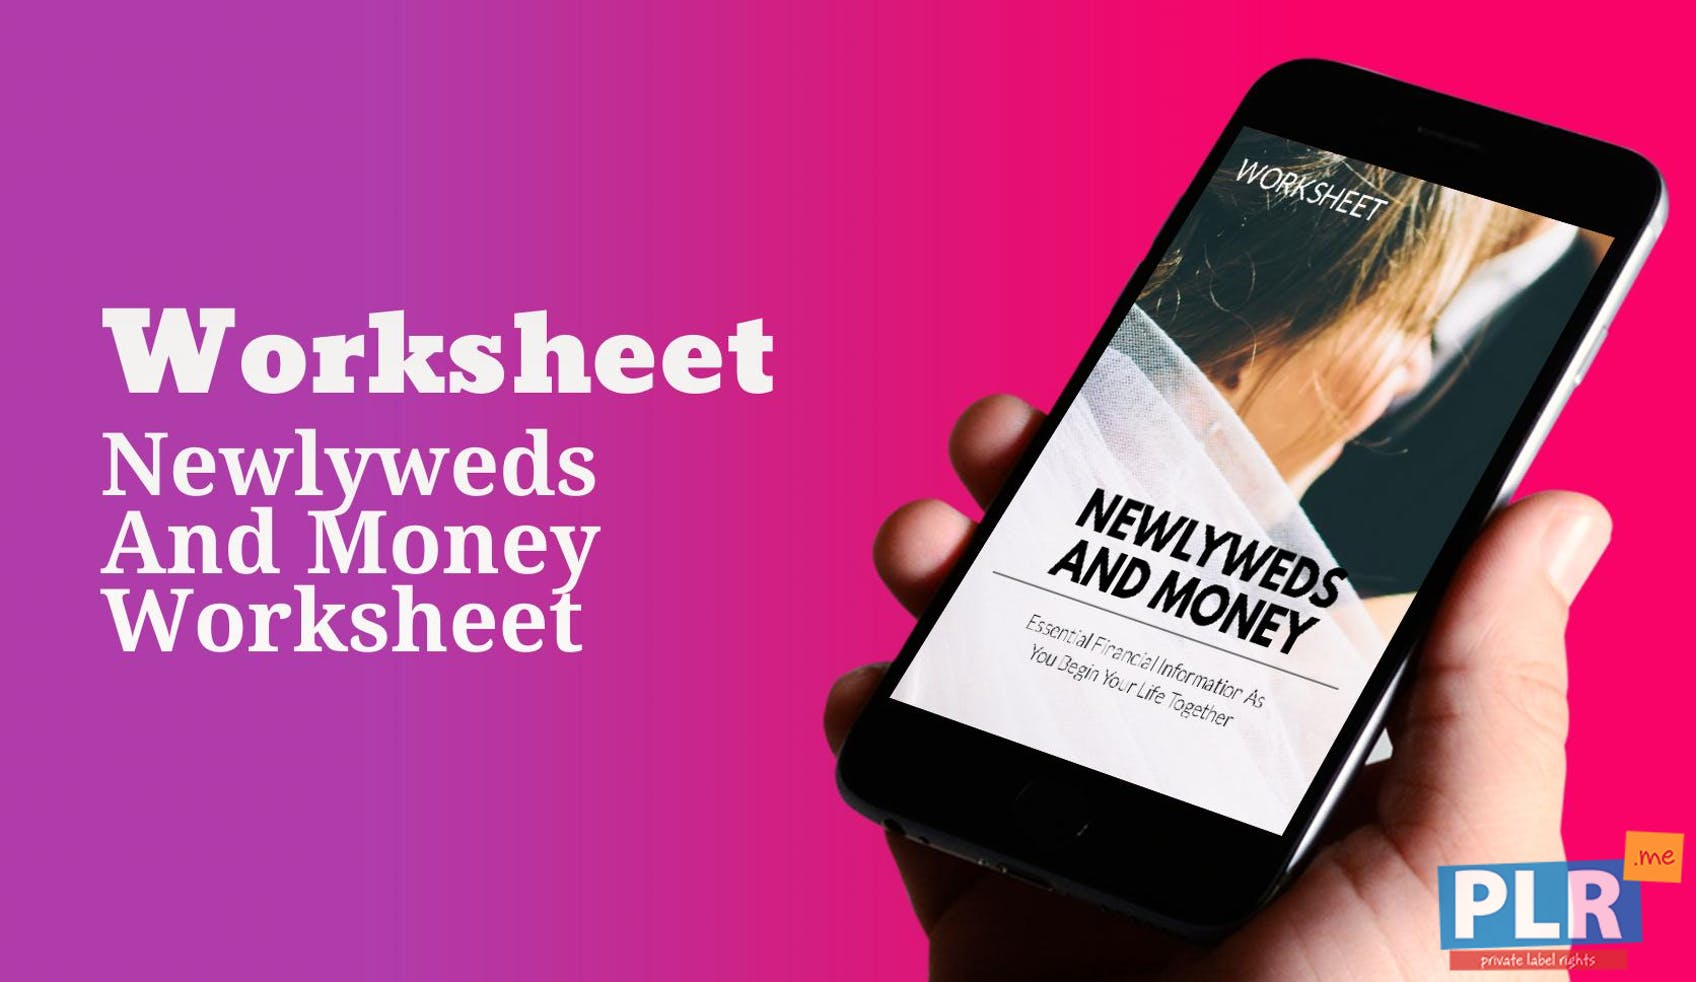 Newlyweds And Money Worksheet